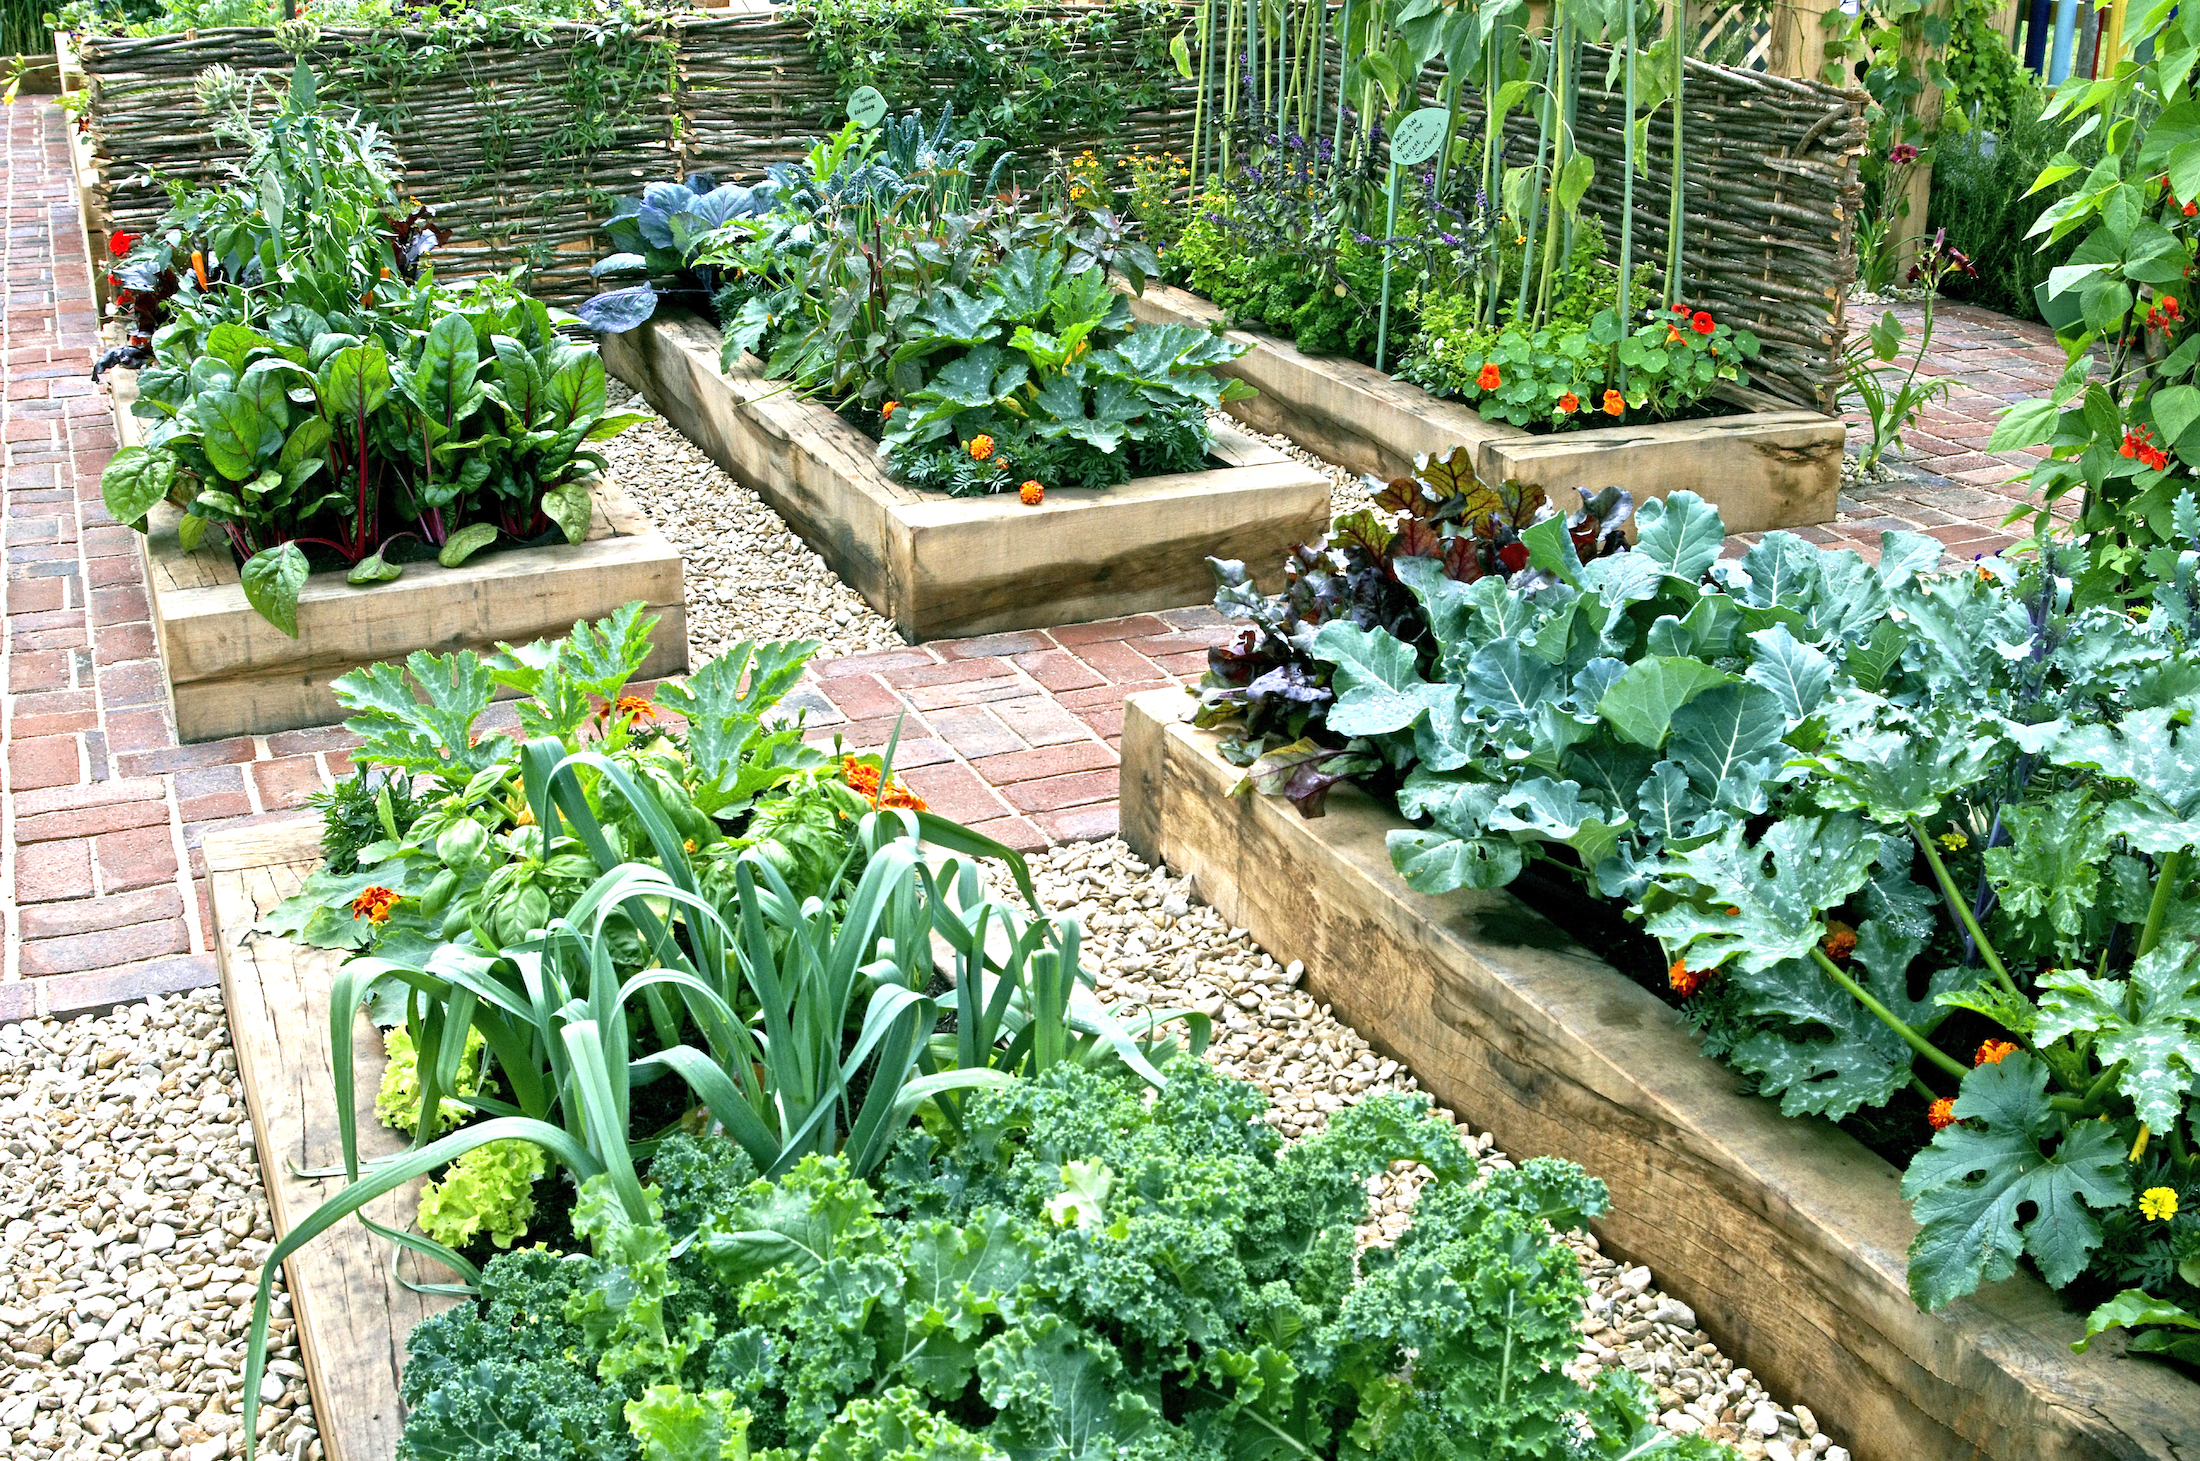 How To Build A Raised Garden Bed Step, How To Build A Raised Garden Plot